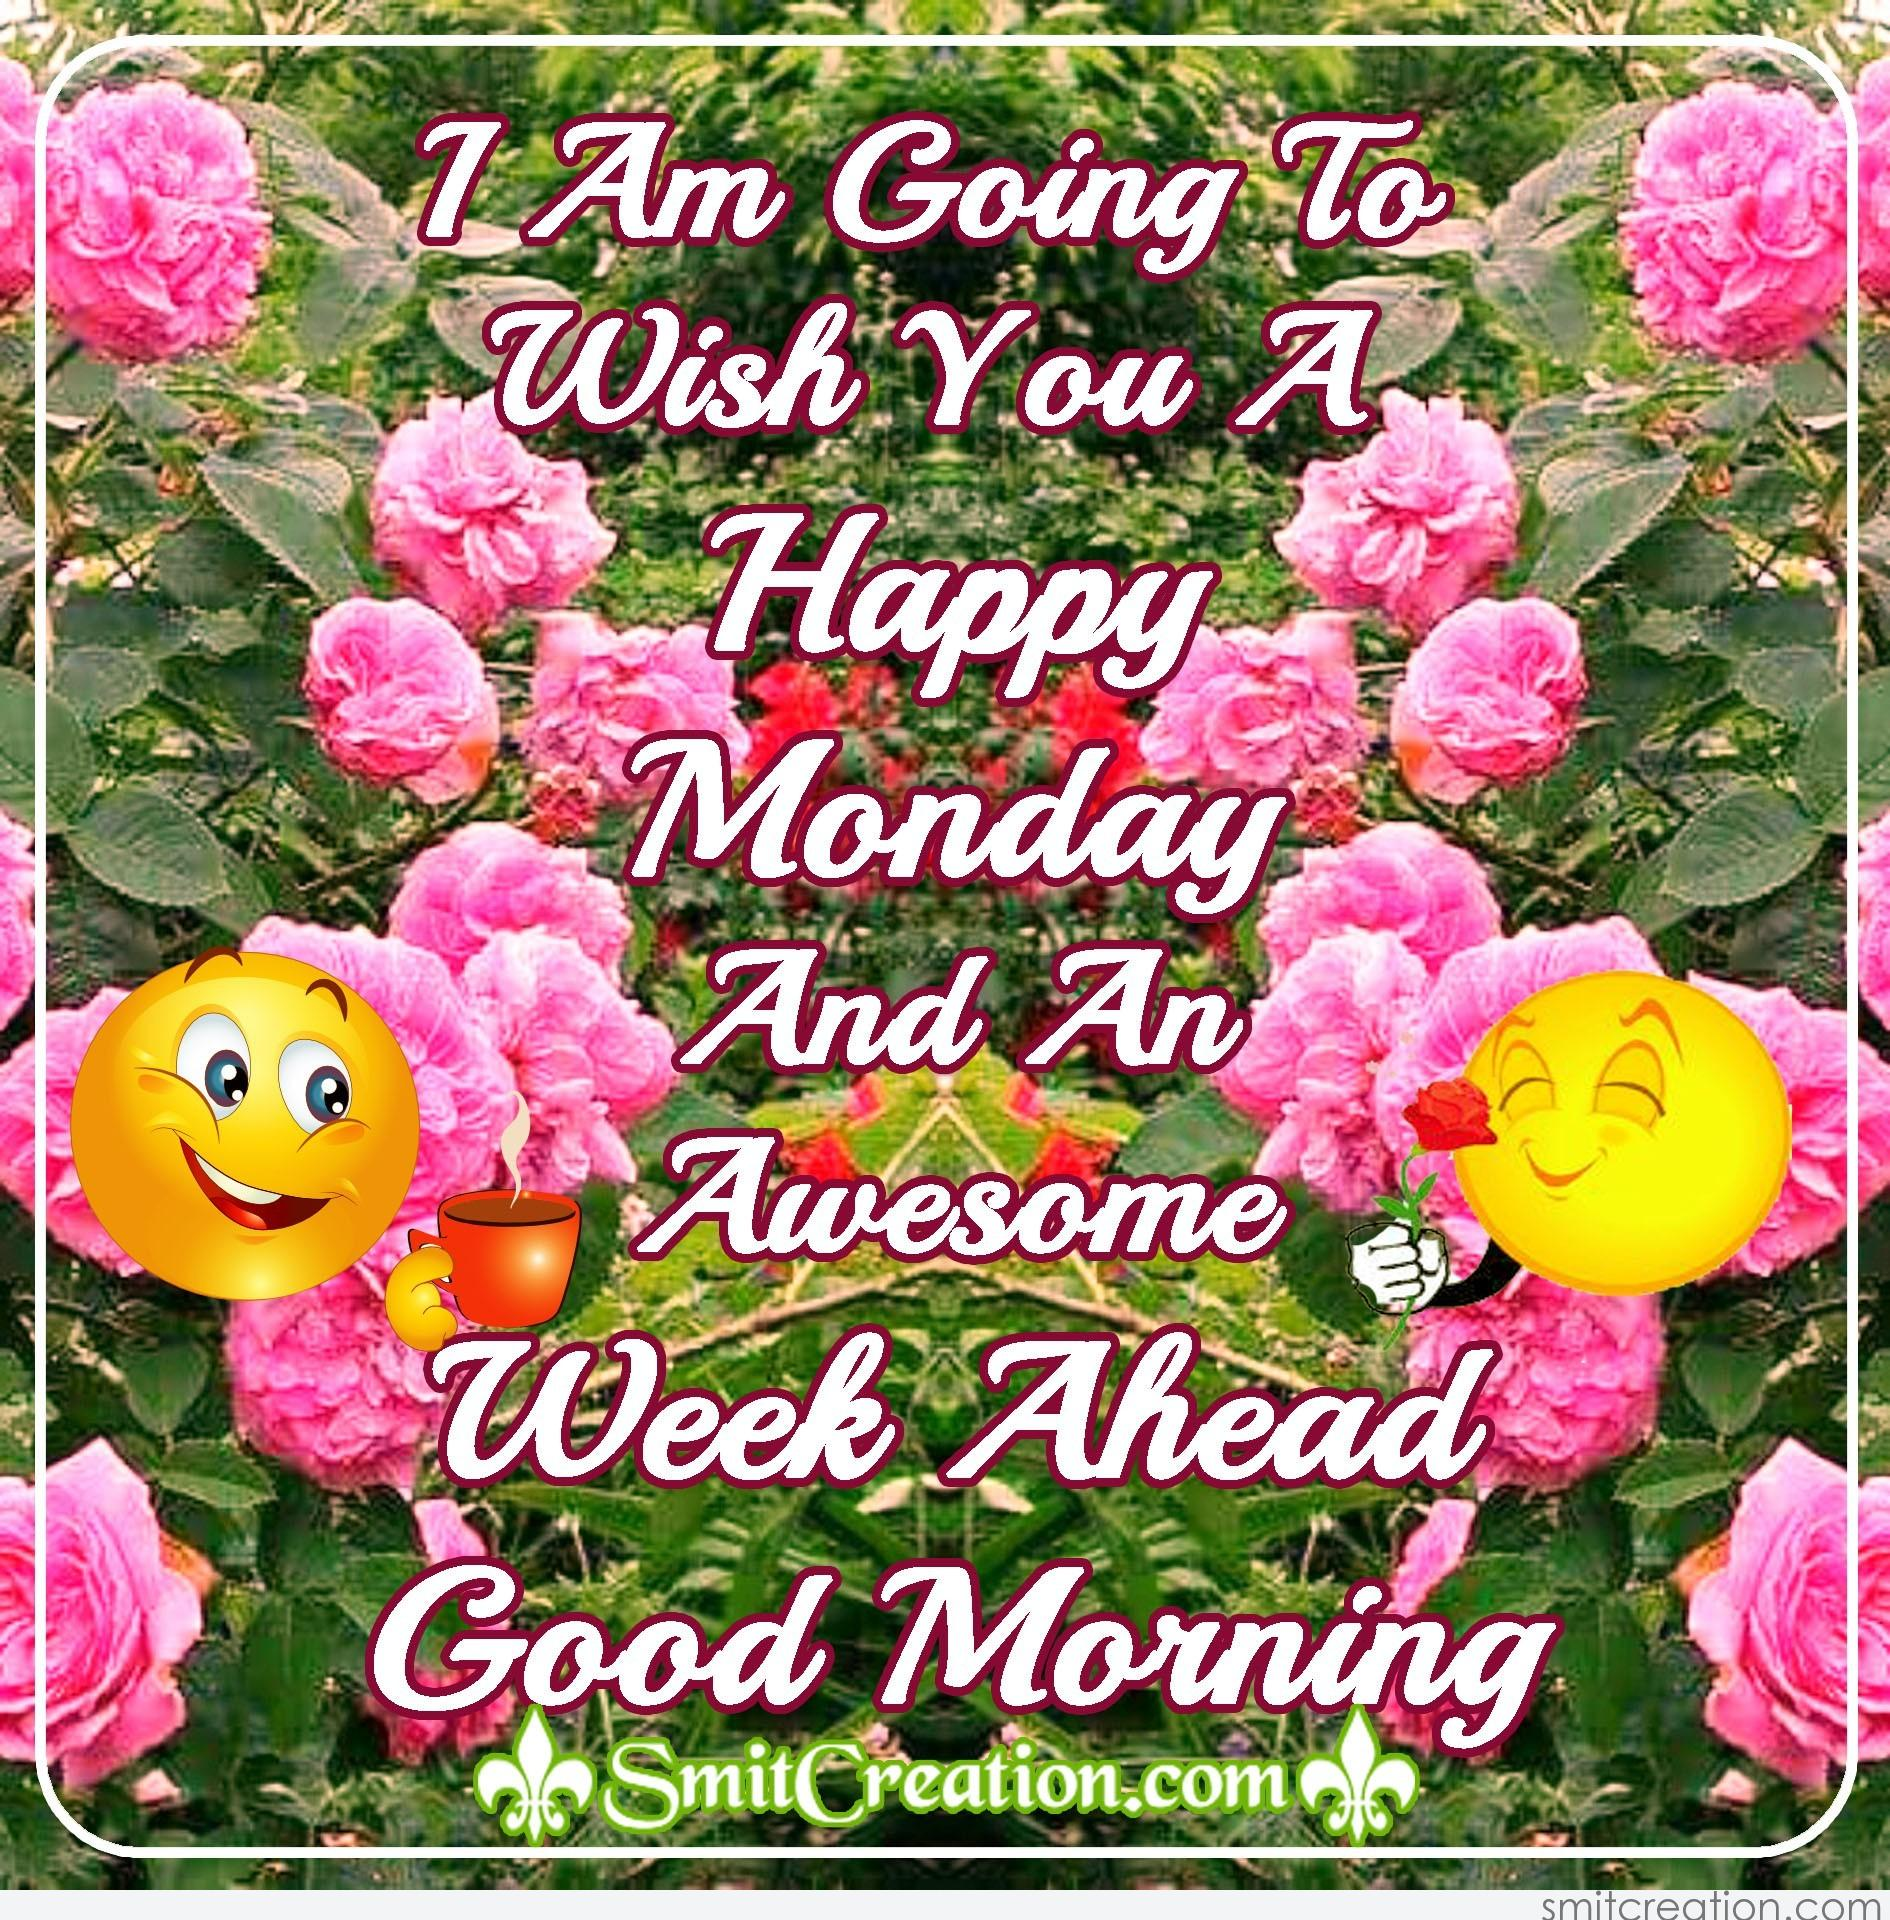 Happy Monday And An Awesome Week Ahead Smitcreation